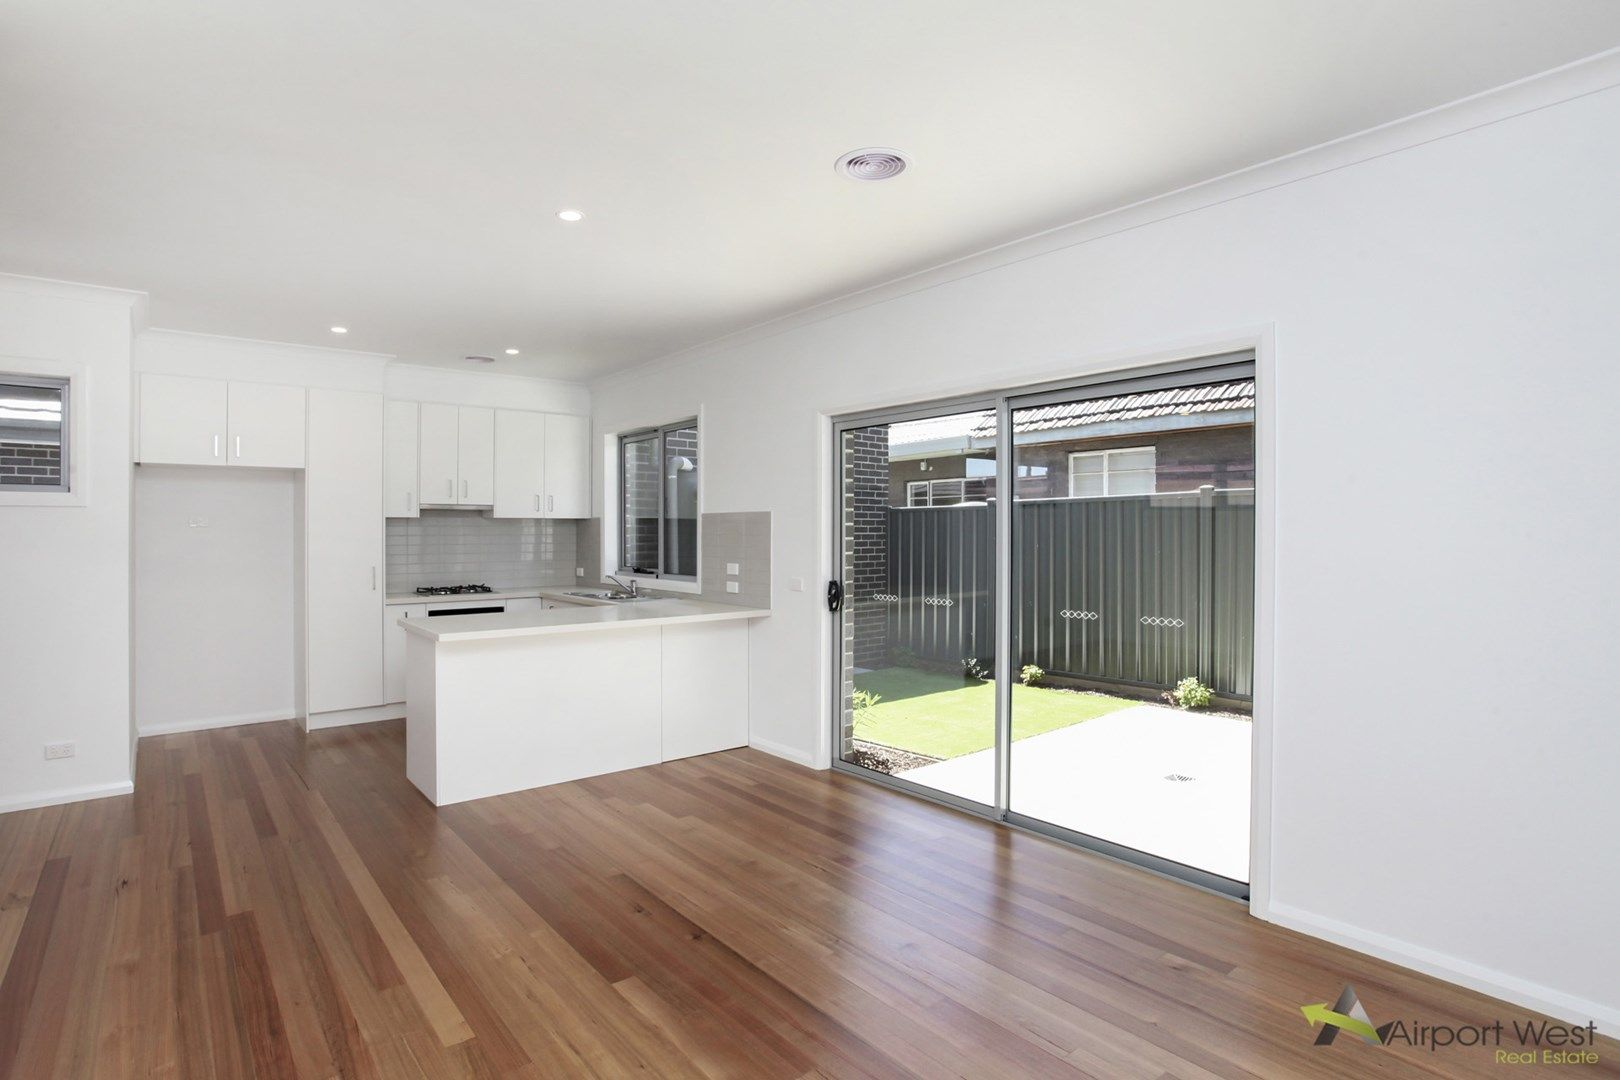 1/12 Hart Street, Airport West VIC 3042, Image 2